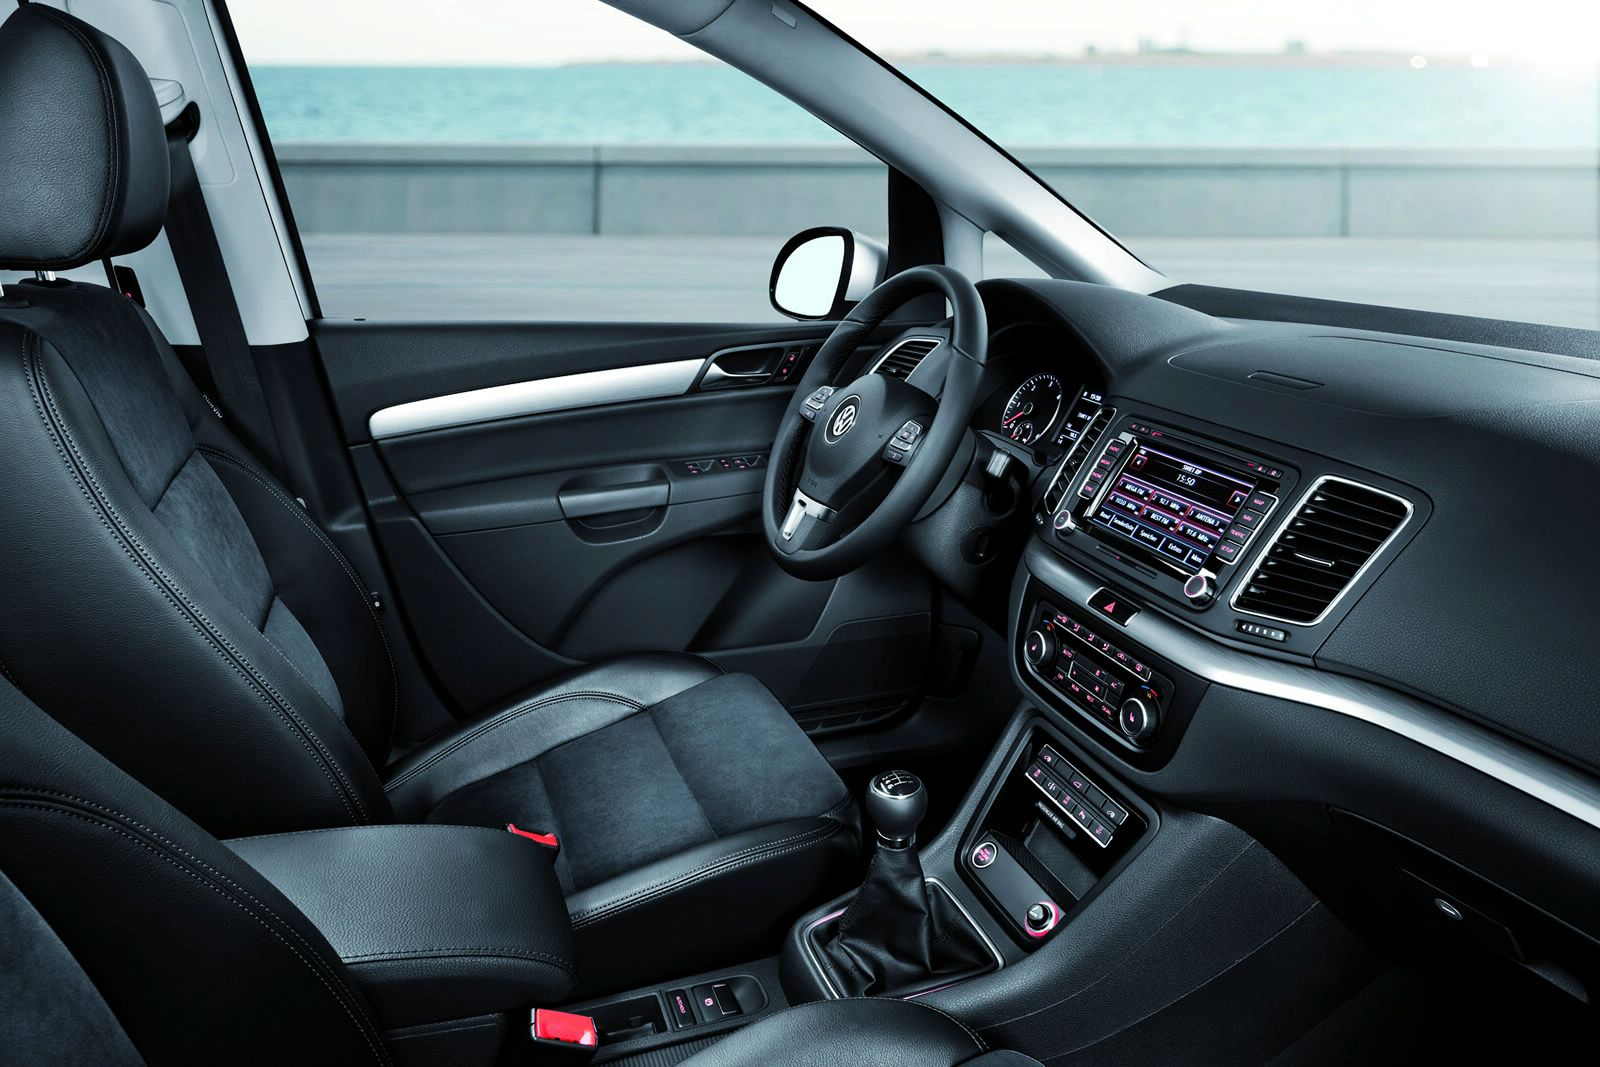 VOLKSWAGEN SHARAN interior